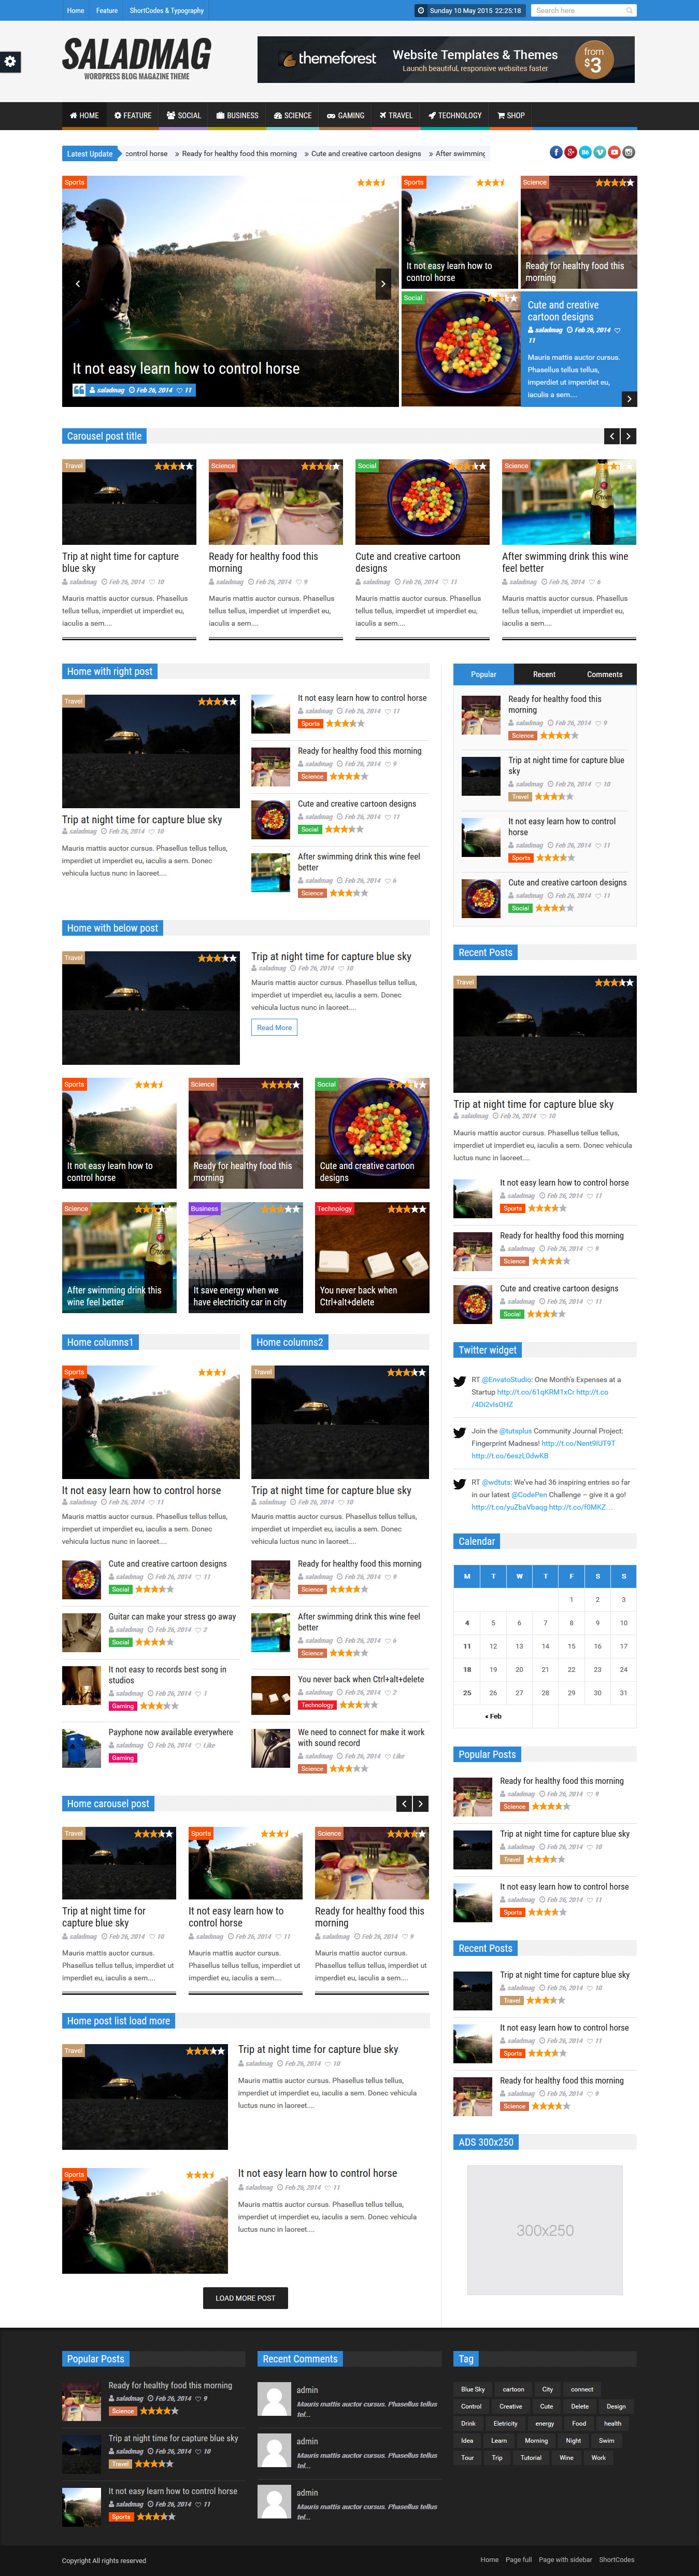 SaladMag - Responsive WordPress Magazine Theme #wp #magazinetemplate ...